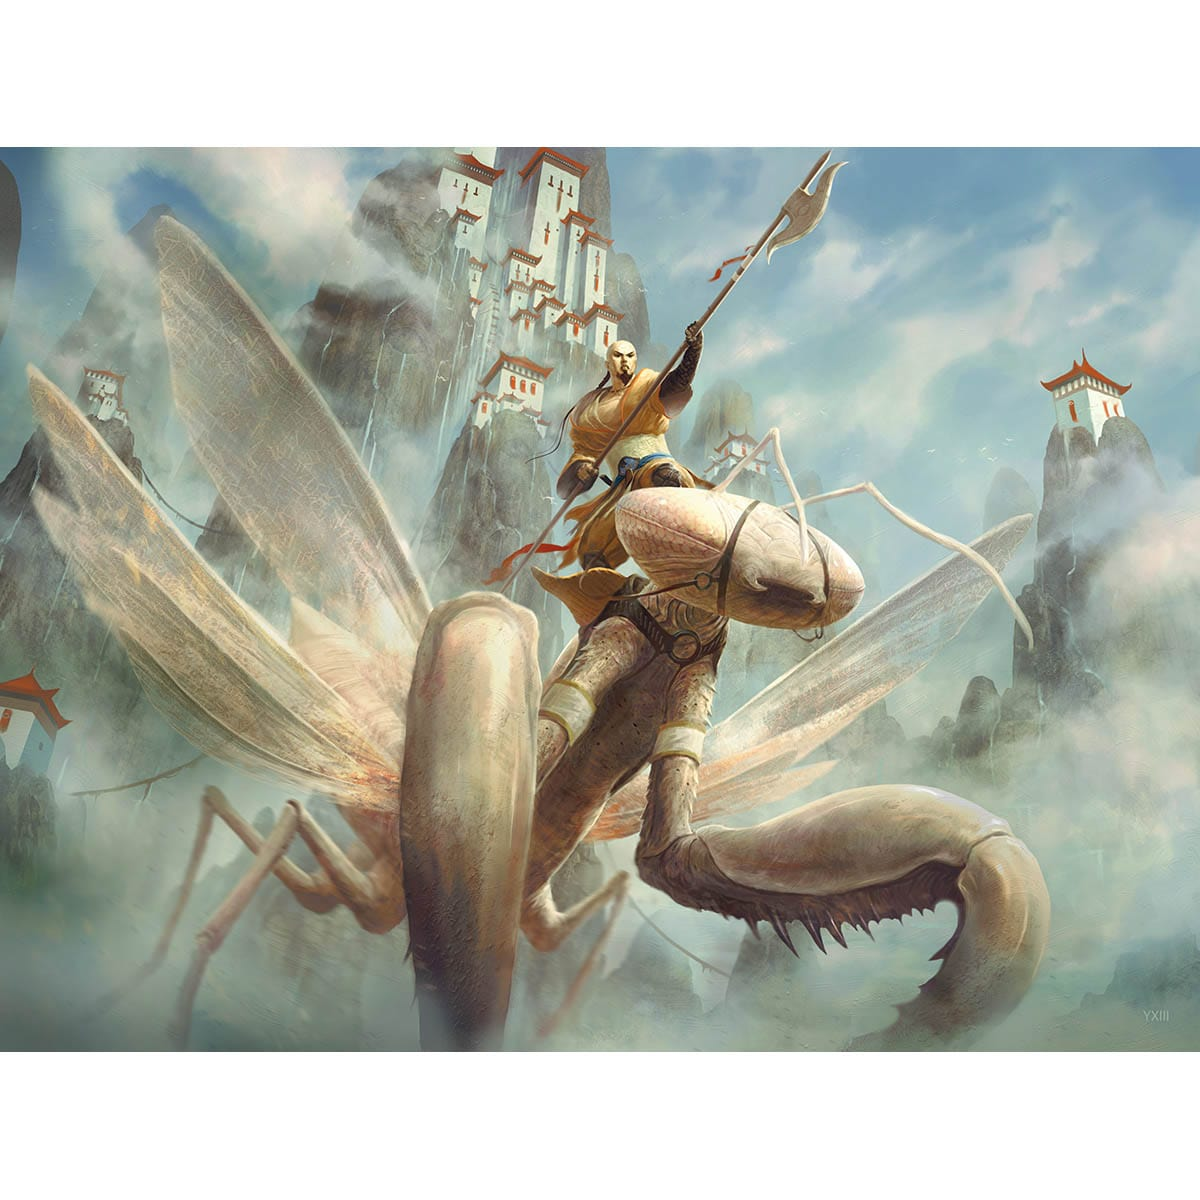 Mantis Rider Print - Print - Original Magic Art - Accessories for Magic the Gathering and other card games